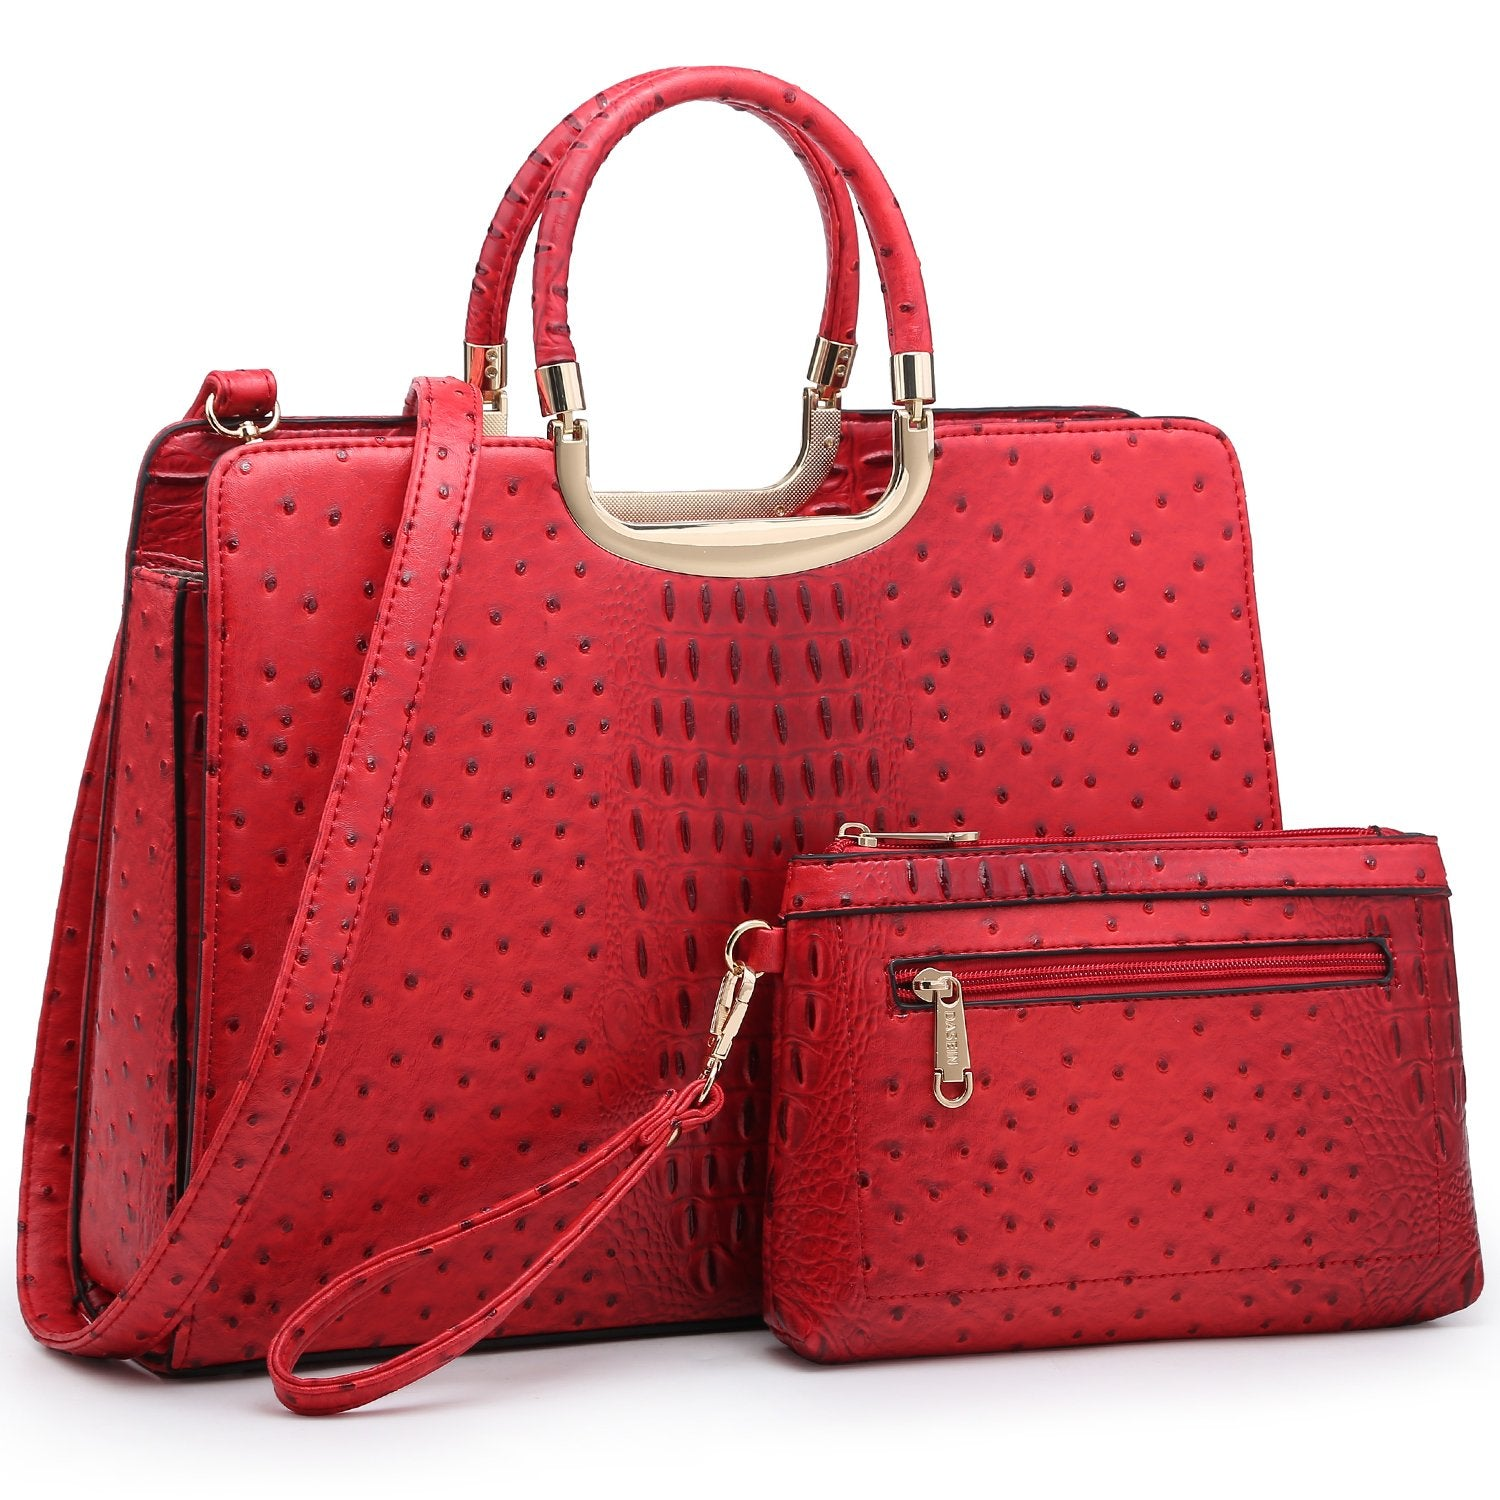 Ostrich Embossed Handbag with Matching Wallet-Handbags & Purses-Dasein Bags